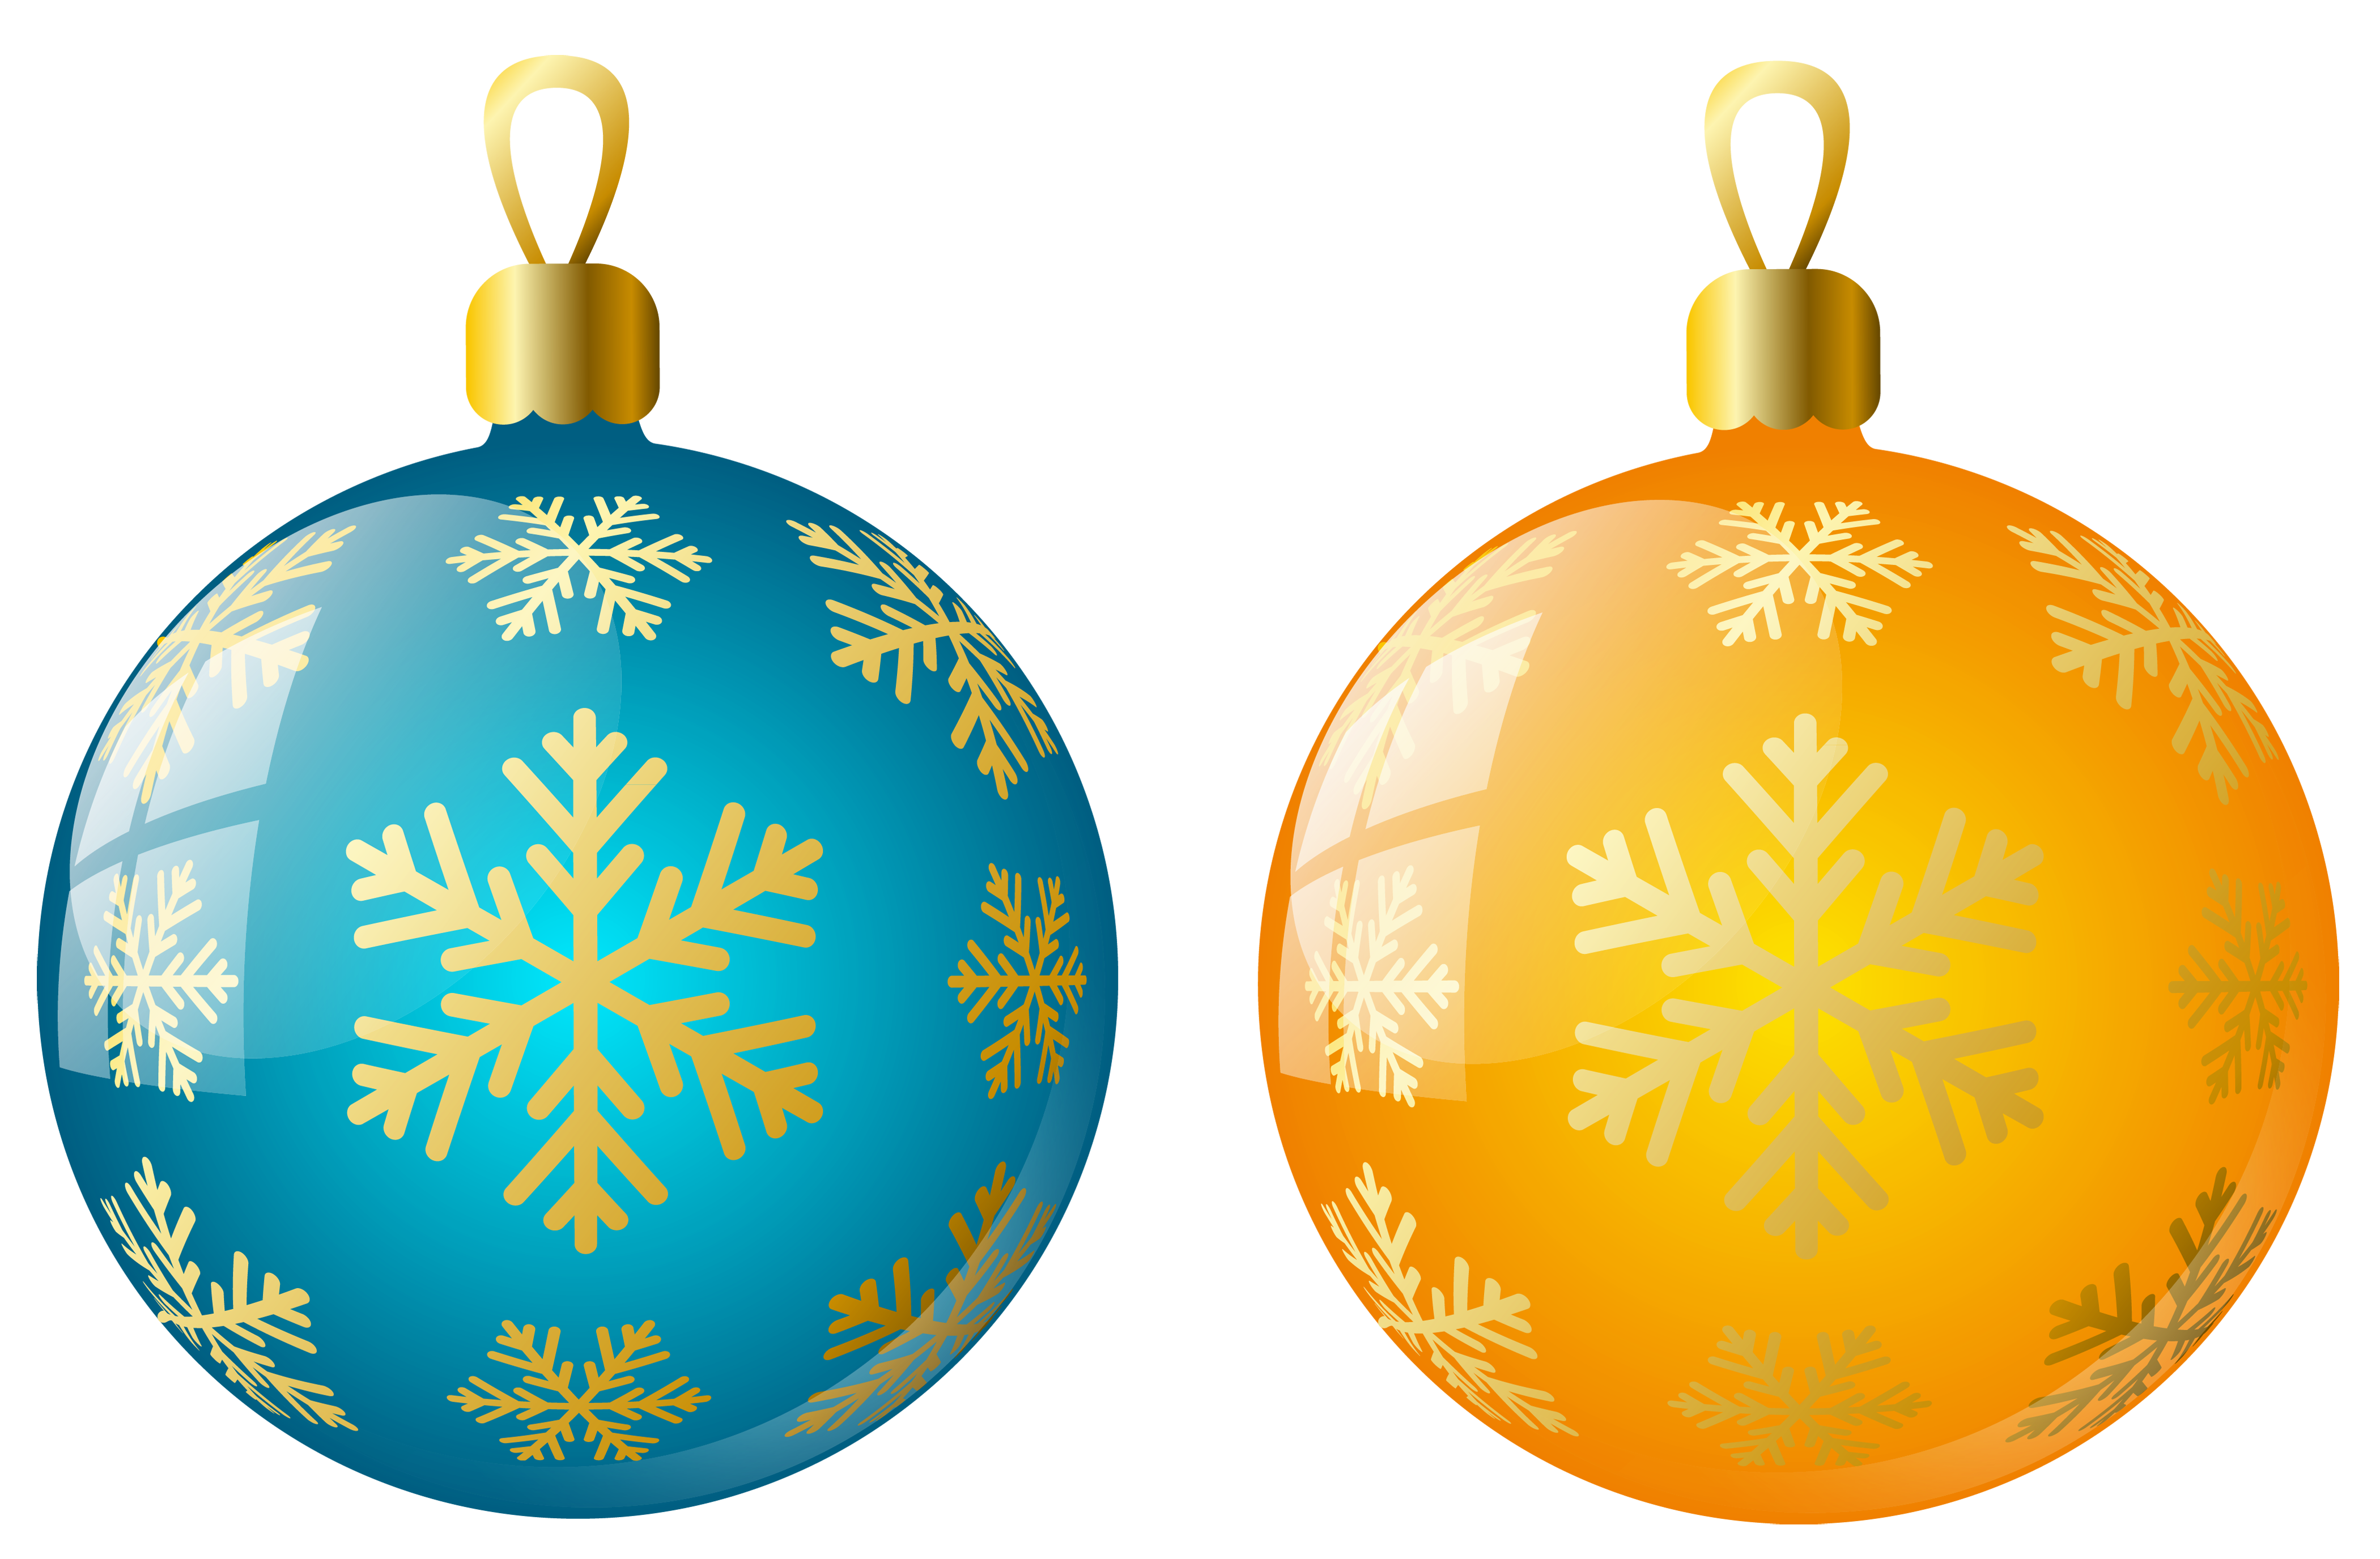 Ornaments ball png. Large size transparent yellow